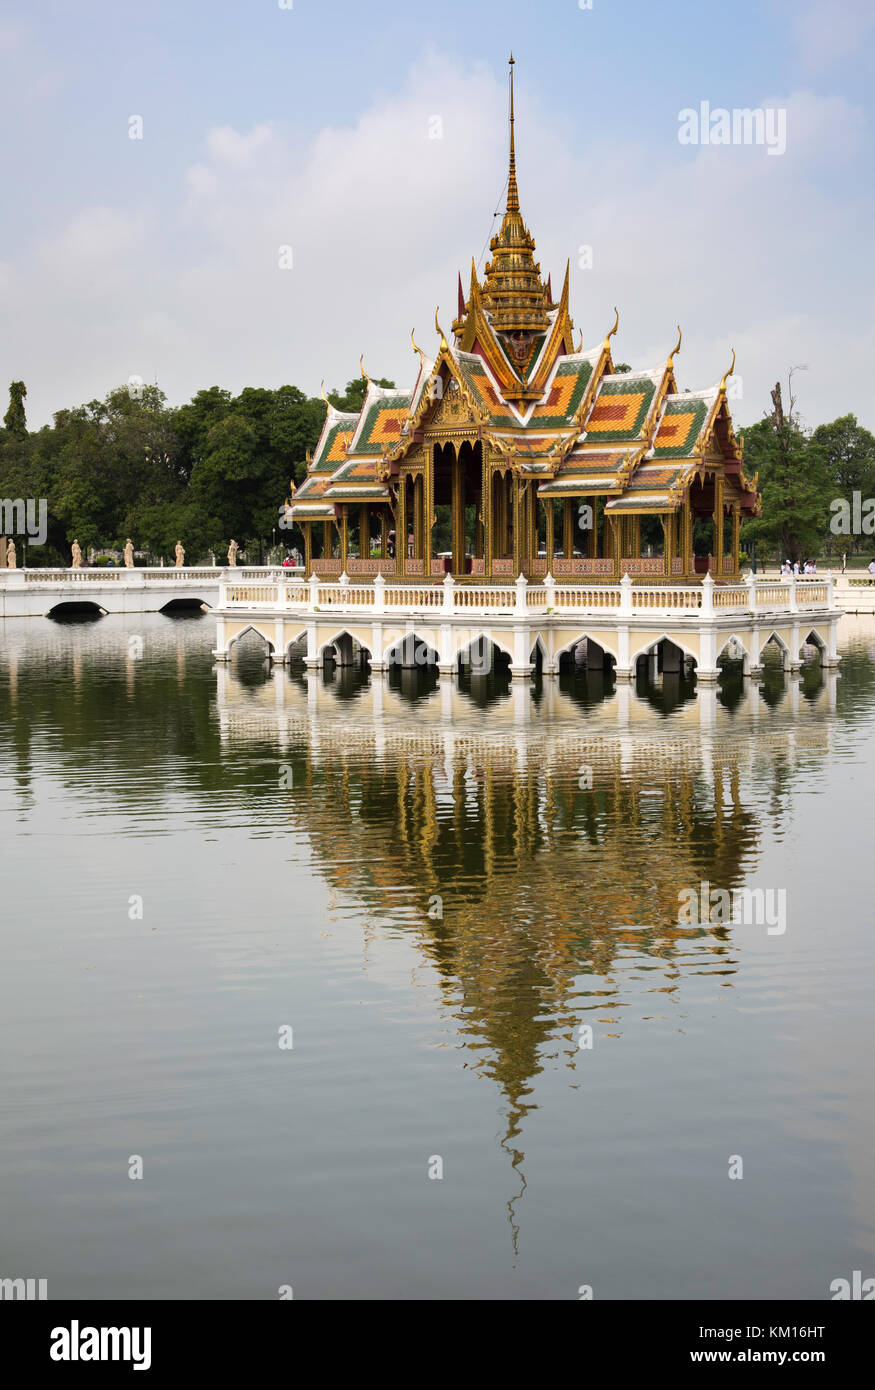 Aisawan Dhiphya-Asana Pavilion at Bang Pa-In Royal Palace, Thailand - Stock Image